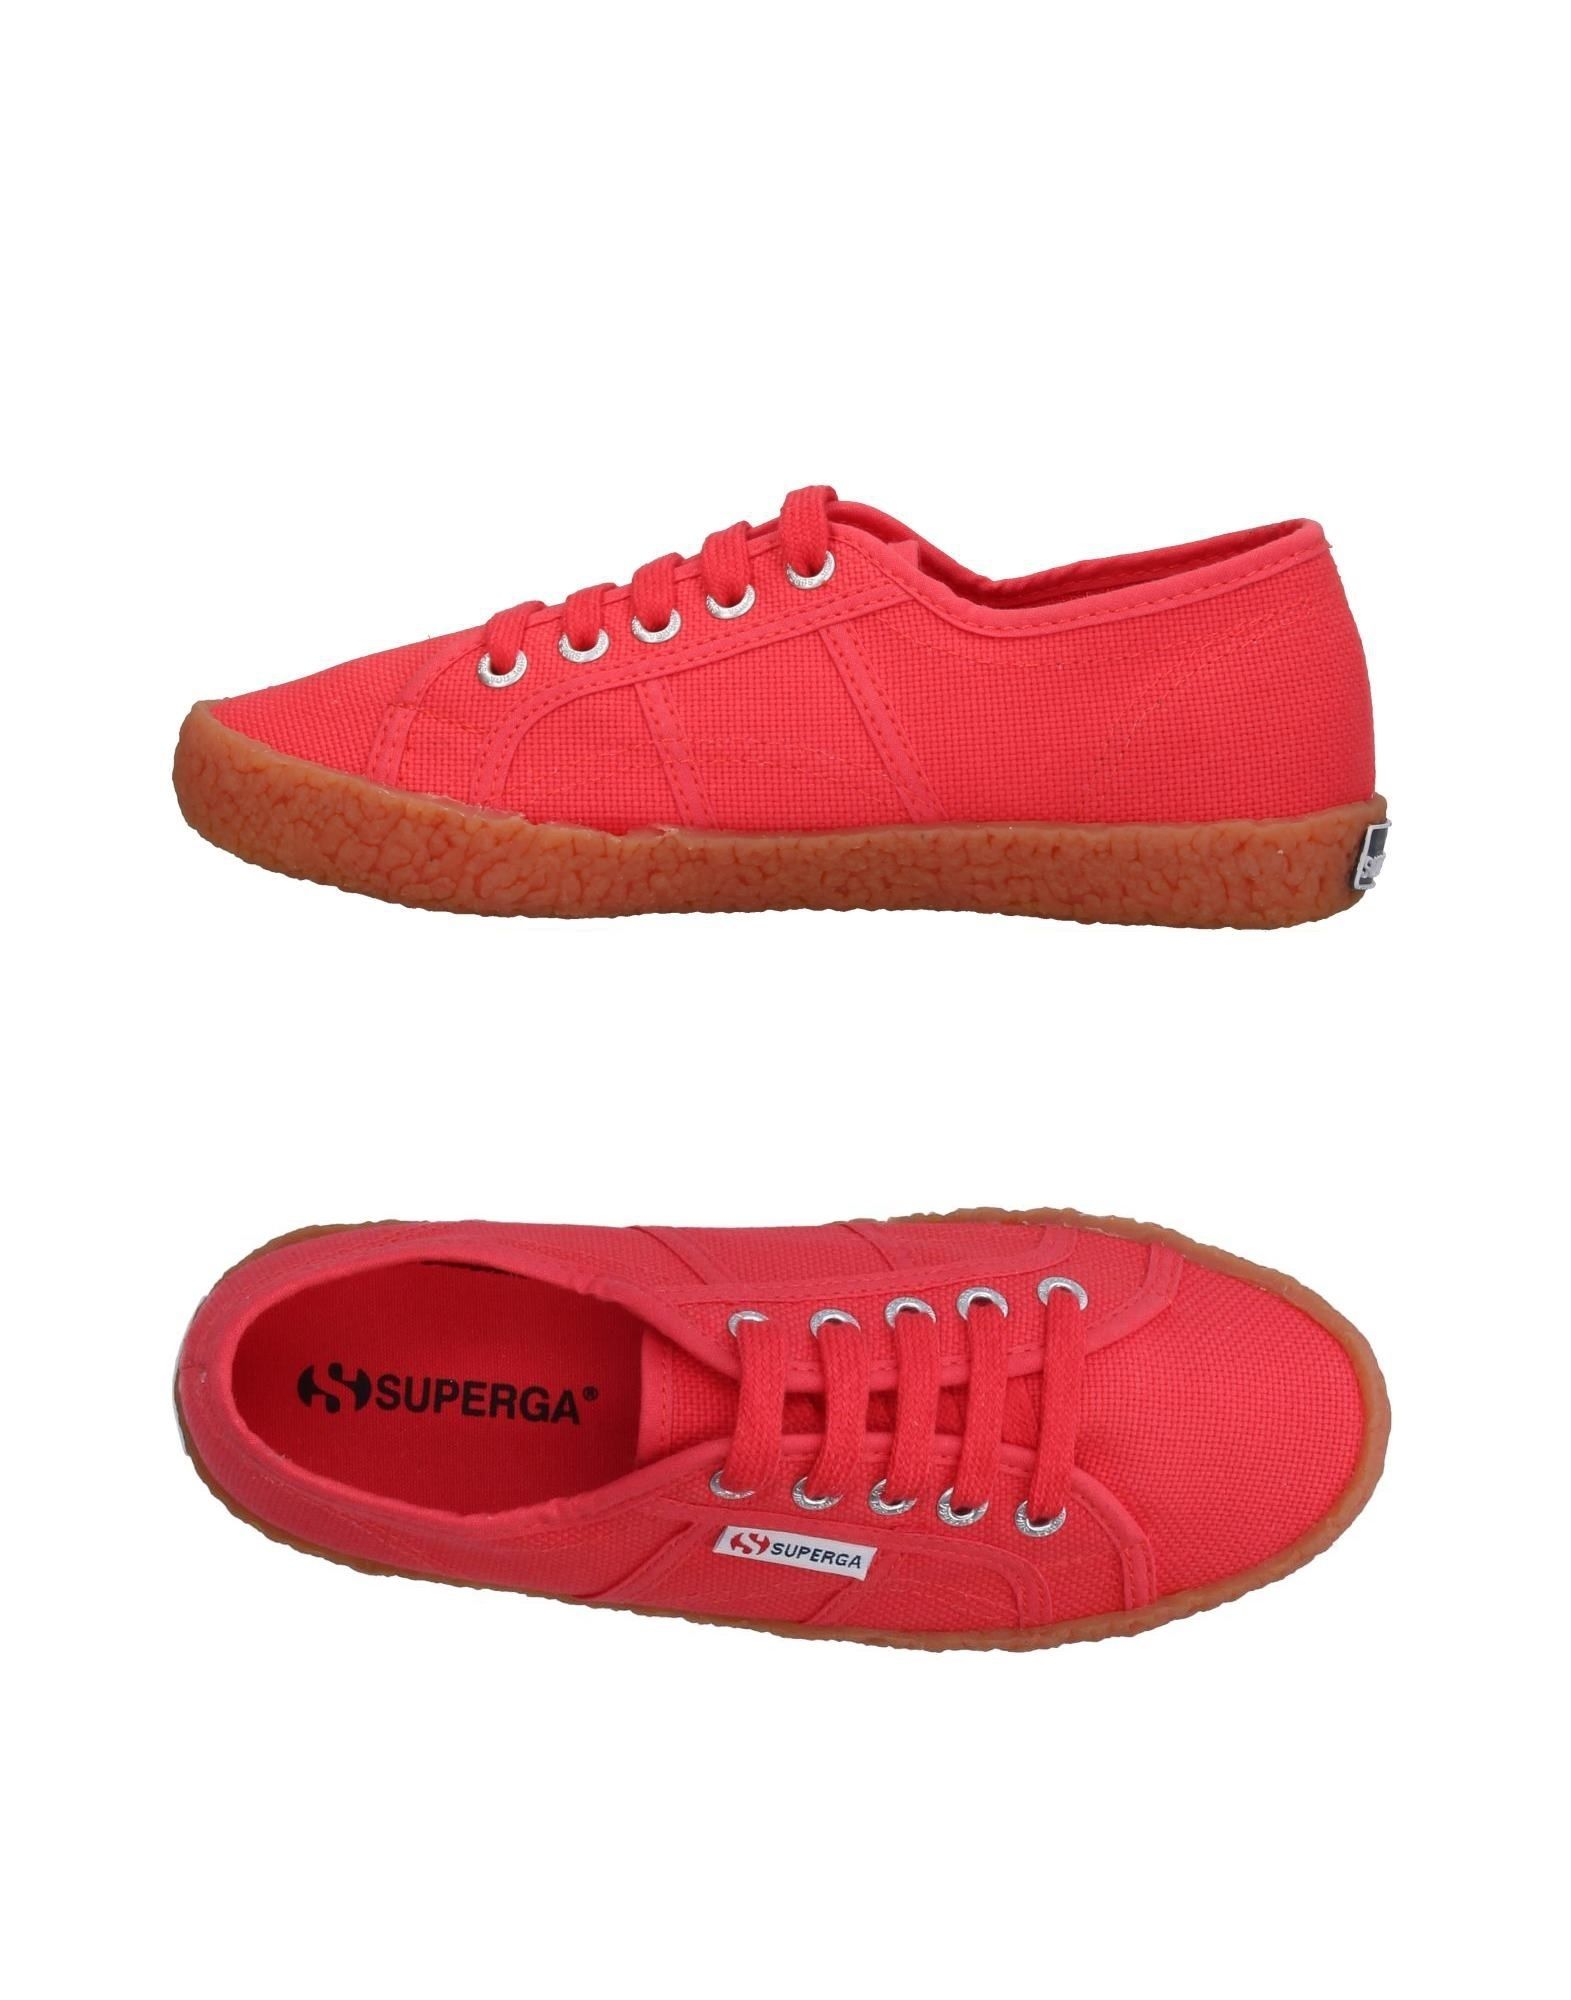 A buon mercato Sneakers Superga  Donna - 11375114MP